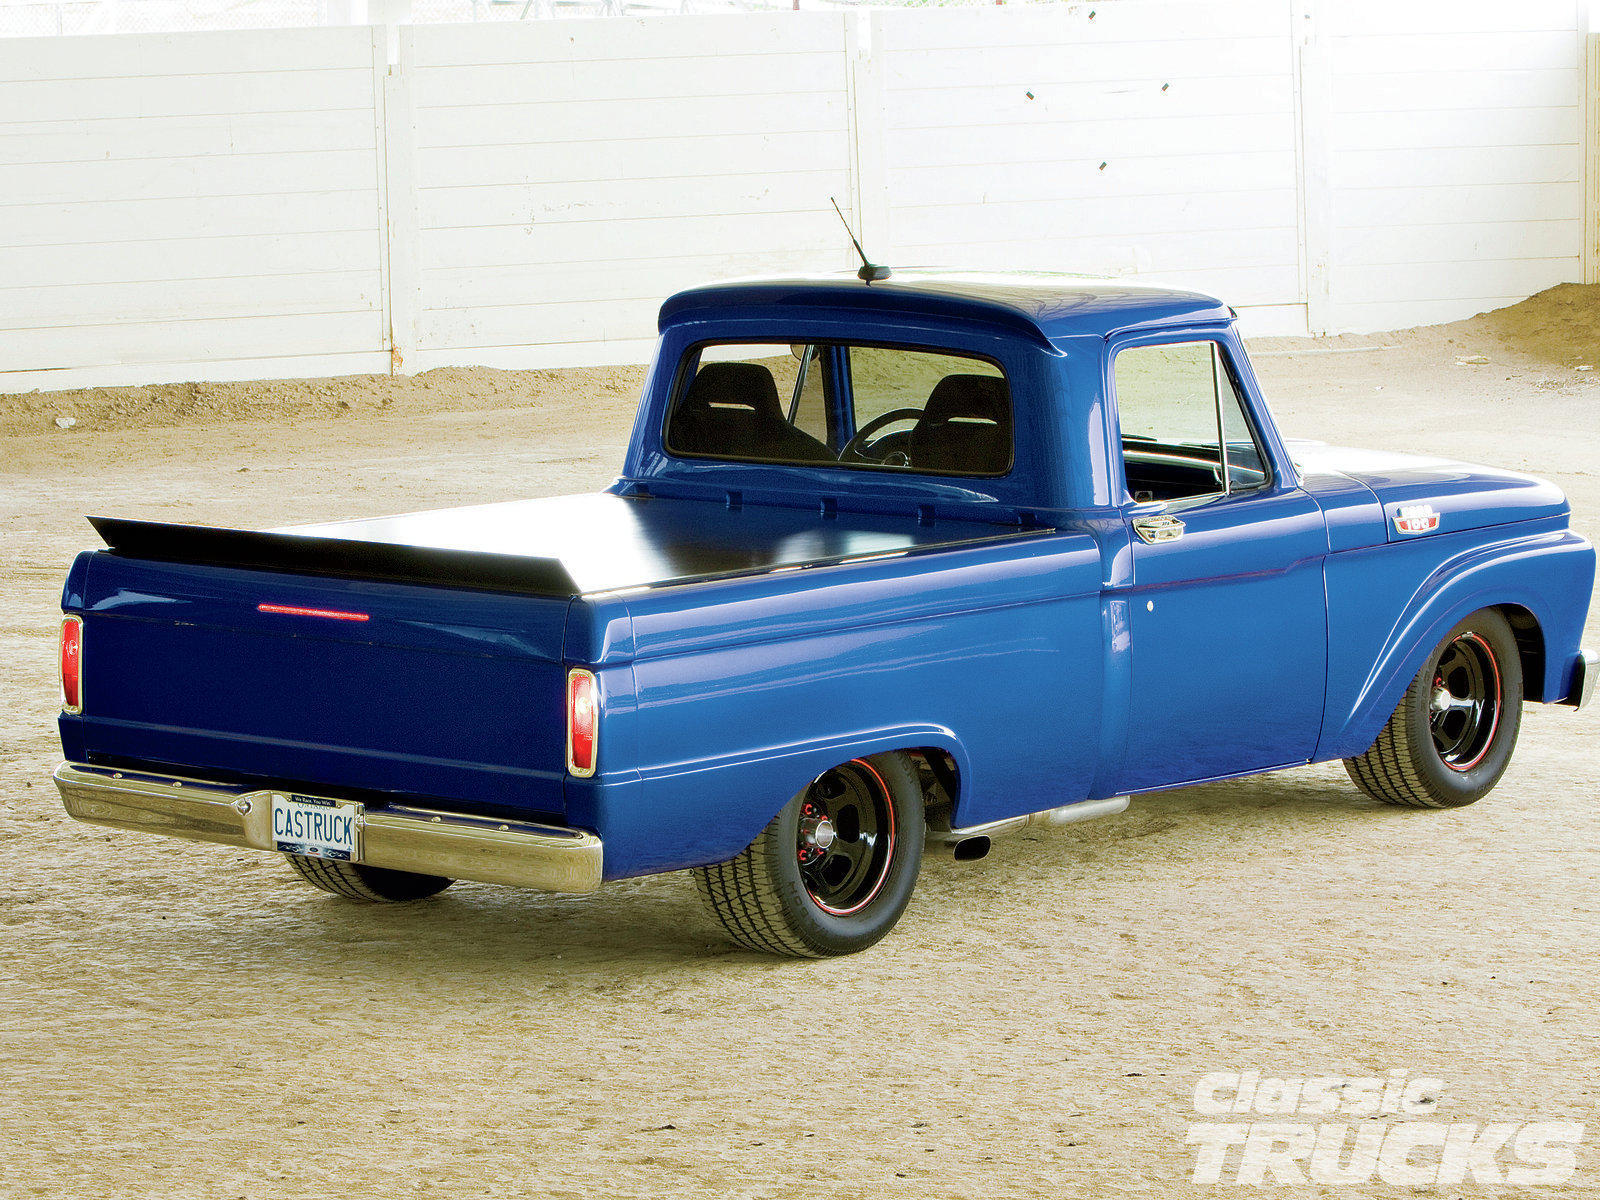 Ford pickup 1964 review amazing pictures and images look at the car